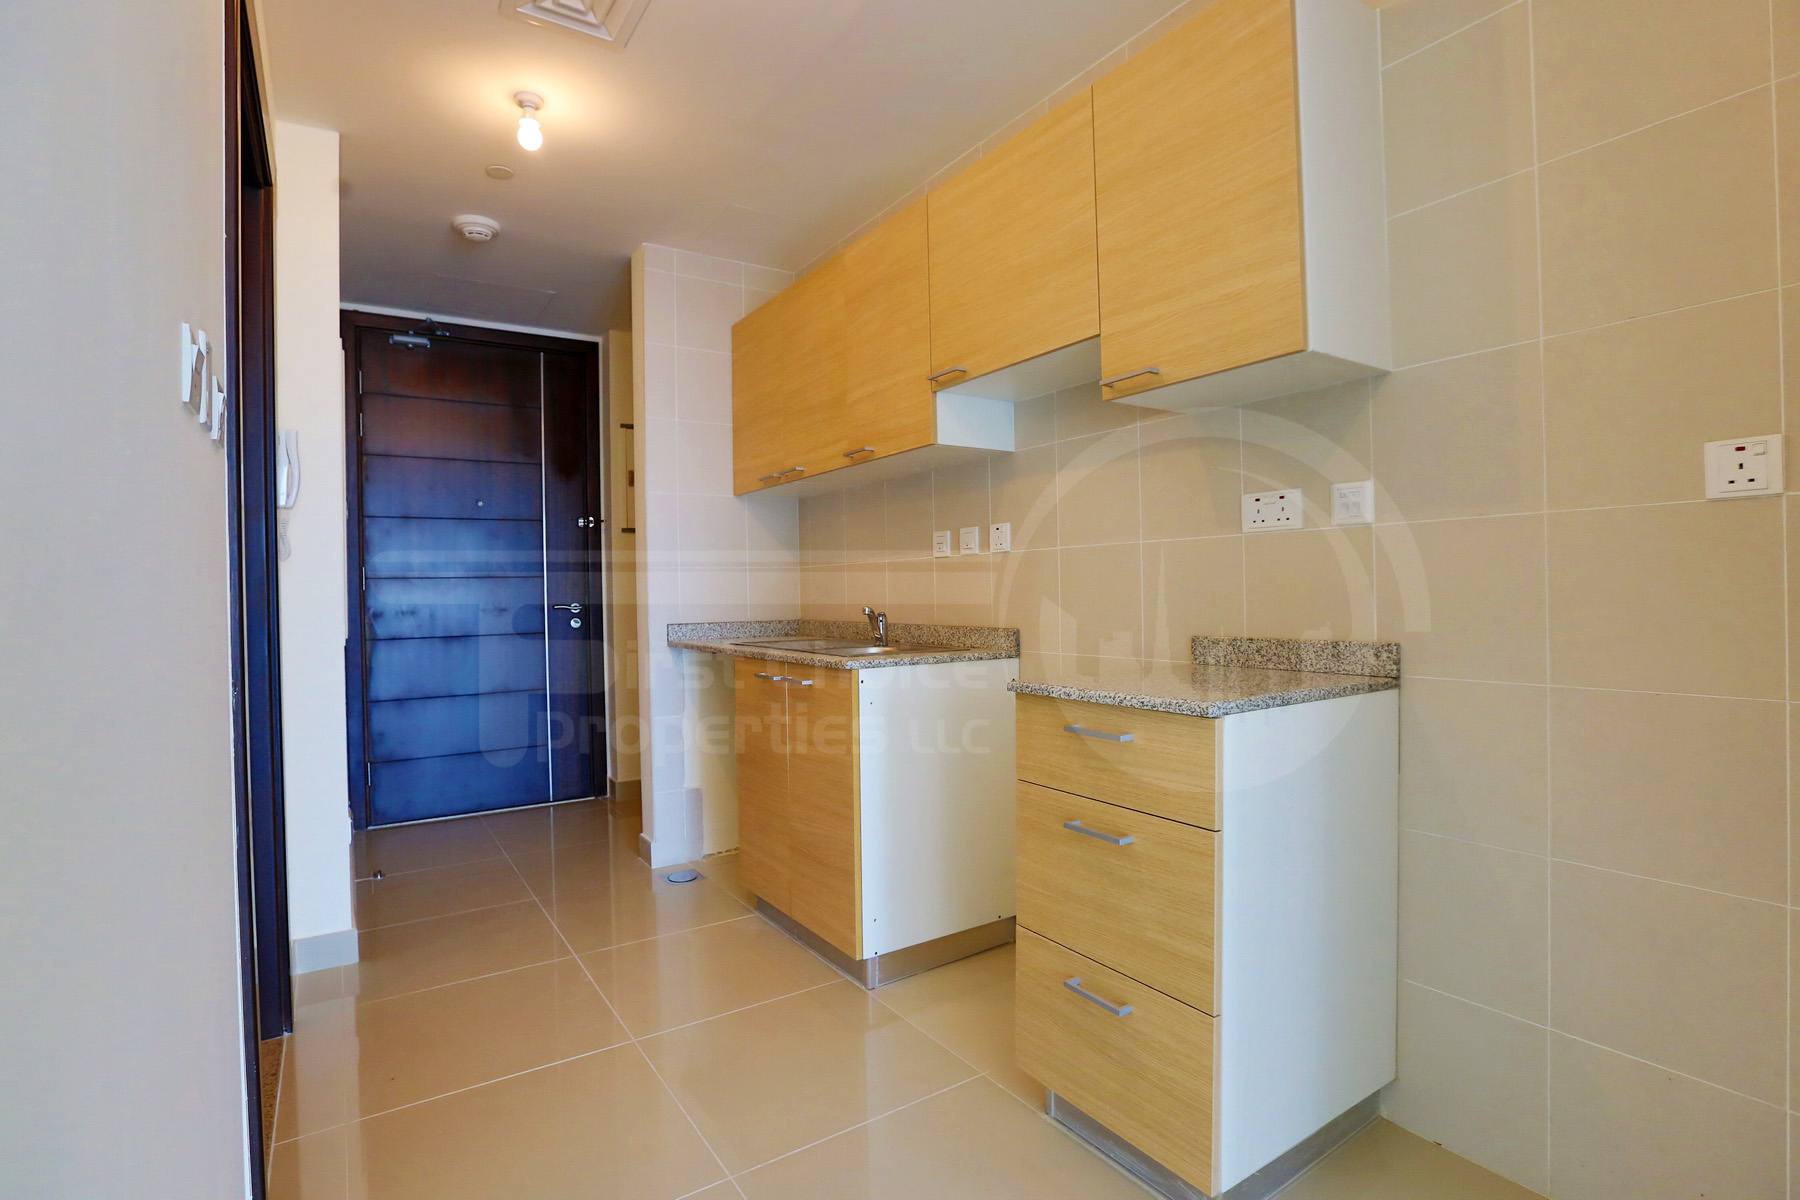 Studio Apartment - Abu Dhabi - UAE - Al Reem Island - City of Lights - C10 Building (1).JPG